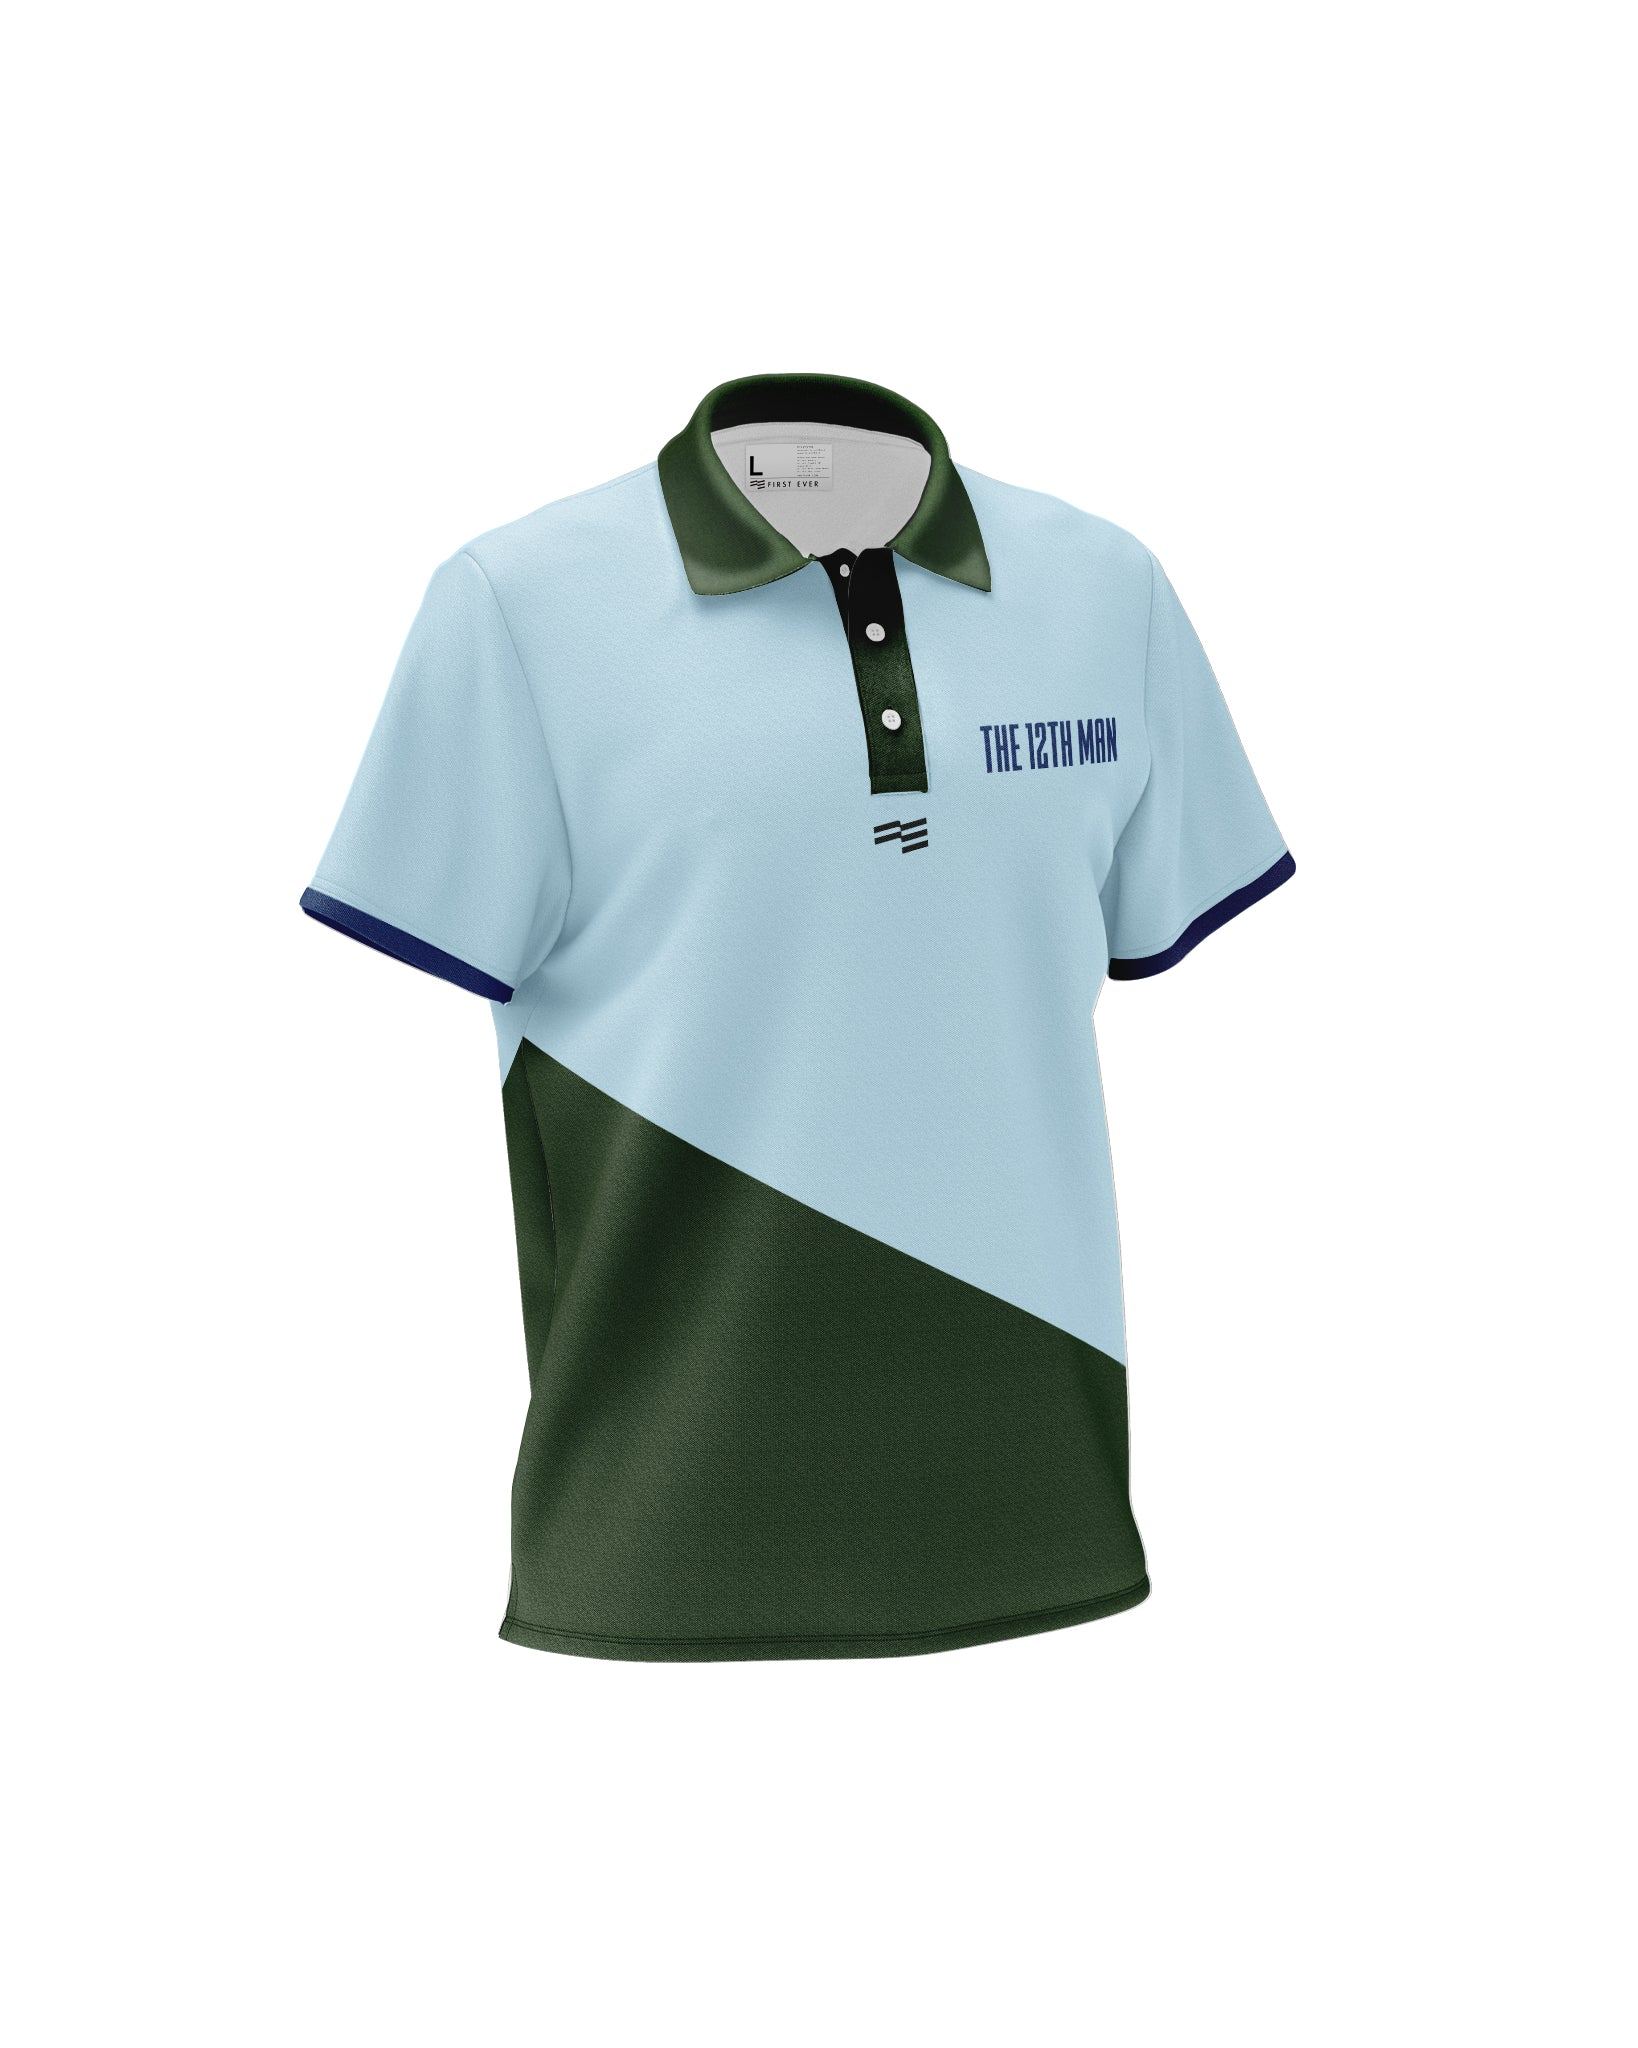 12th Man Cricket Polos - Mens